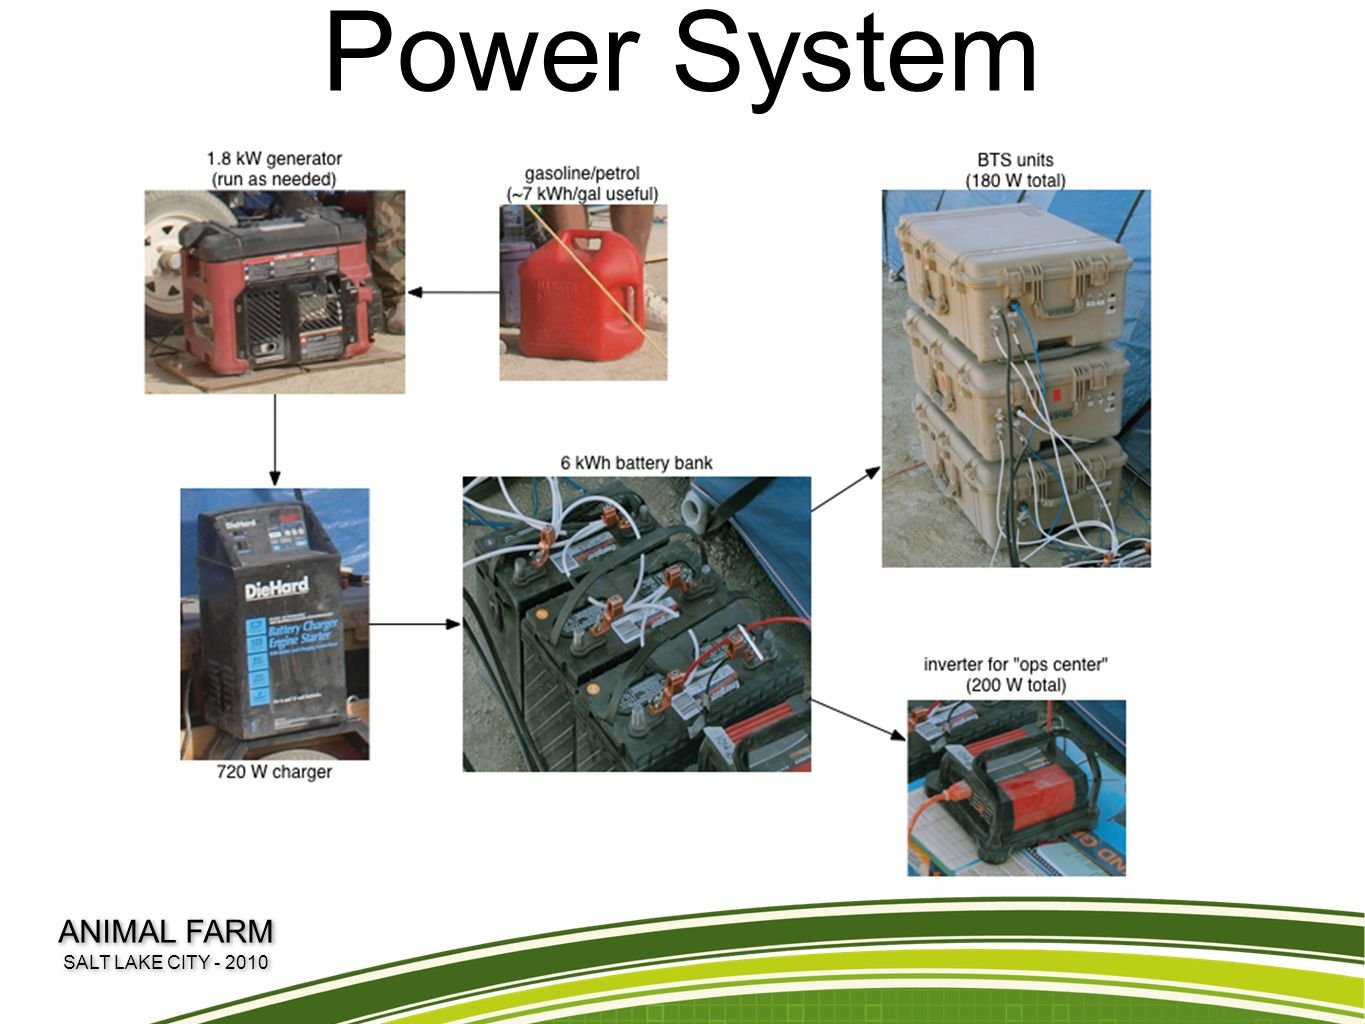 Power System ANIMAL FARM SALT LAKE CITY - 2010 ANIMAL FARM SALT LAKE CITY - 2010